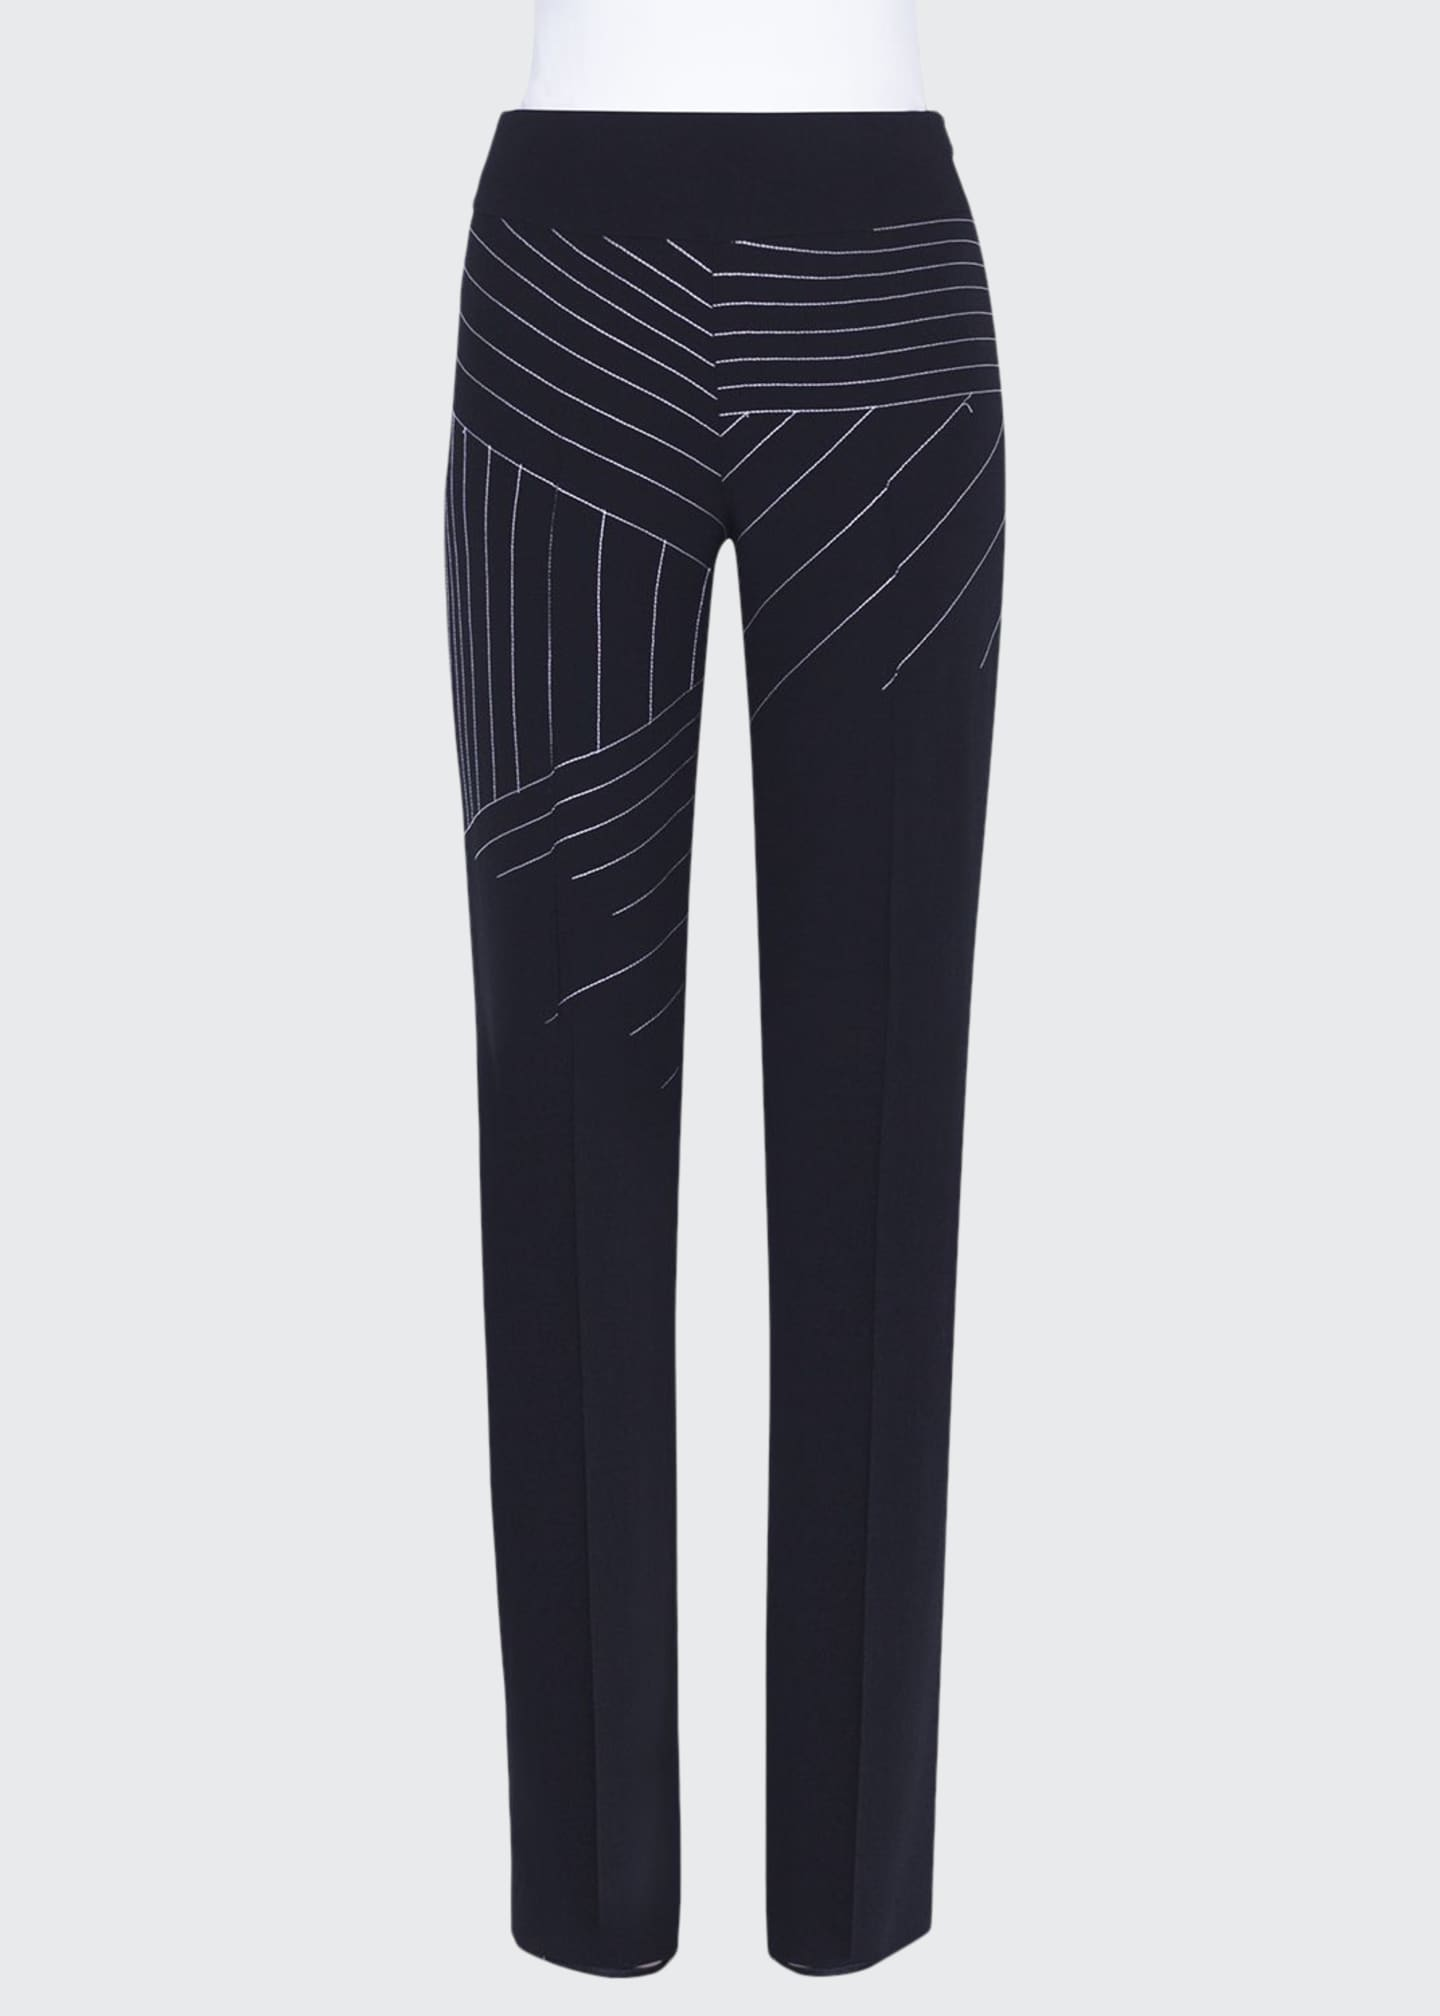 Akris Carla Swiss-Mountain Embroidered Wool Pants